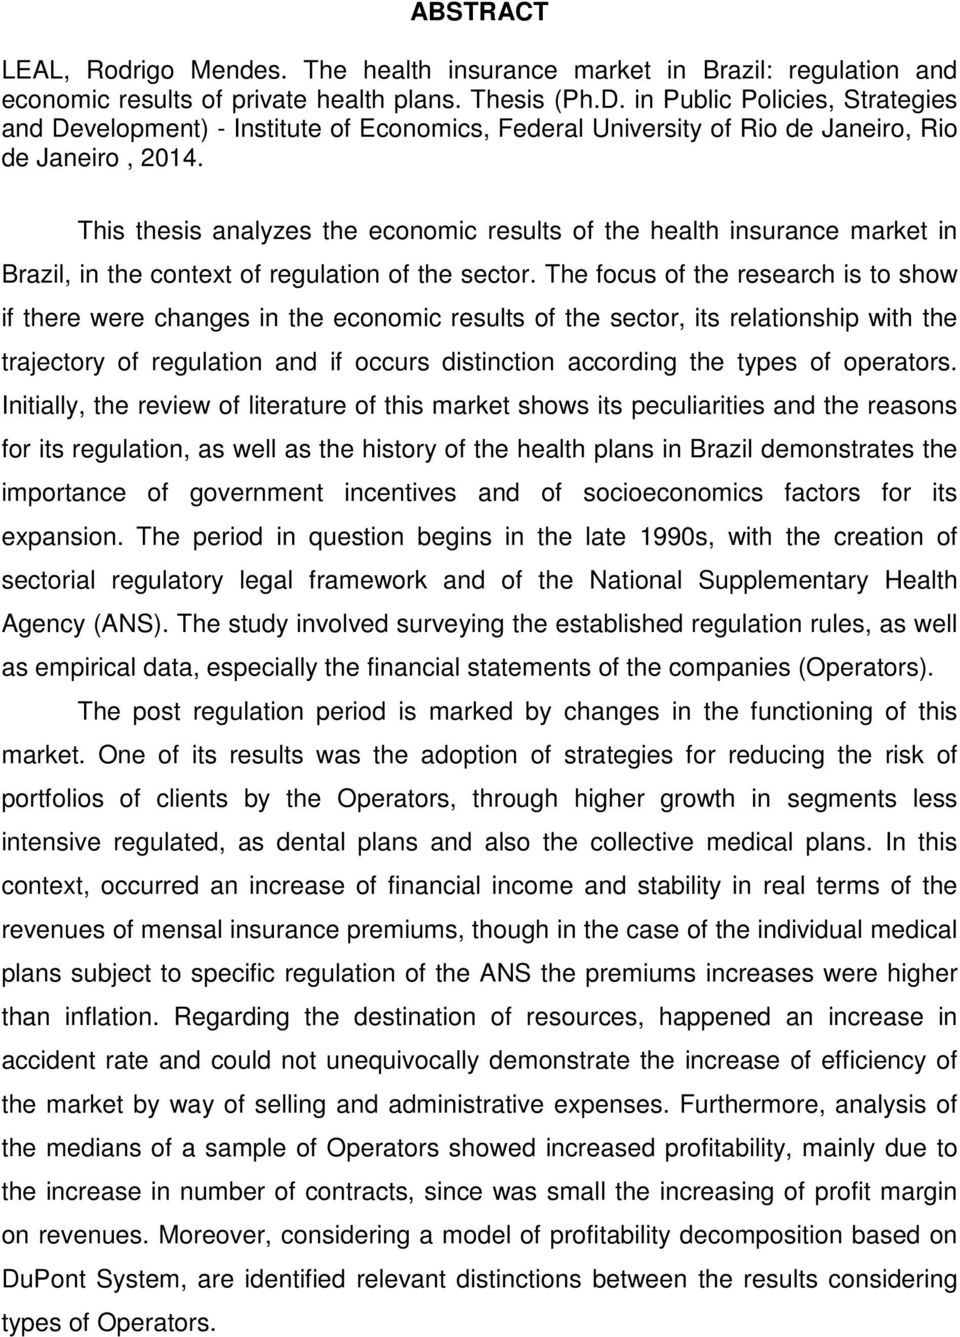 This thesis analyzes the economic results of the health insurance market in Brazil, in the context of regulation of the sector.